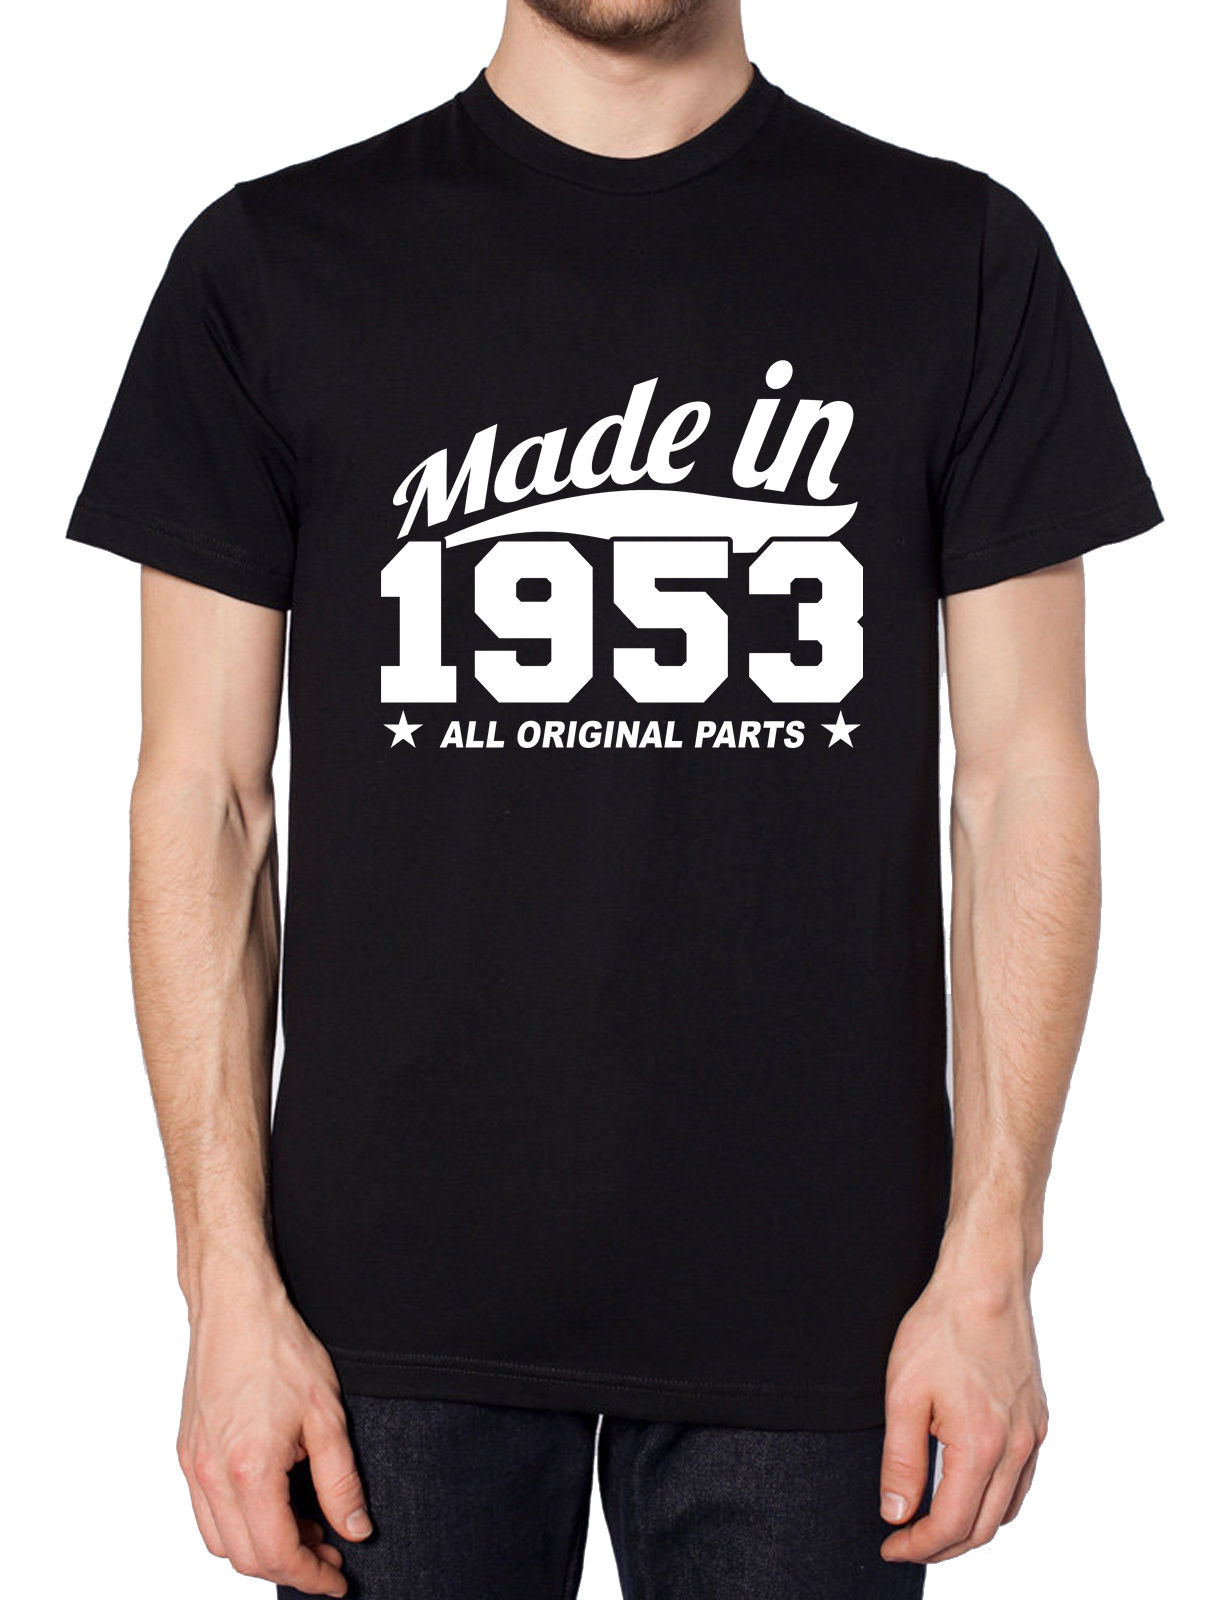 MADE IN 1953 ALL ORIGINAL PARTS T SHIRT TOP FUNNY HUMOUR GIFT PRESENT GRANDAD , Main Colour Black